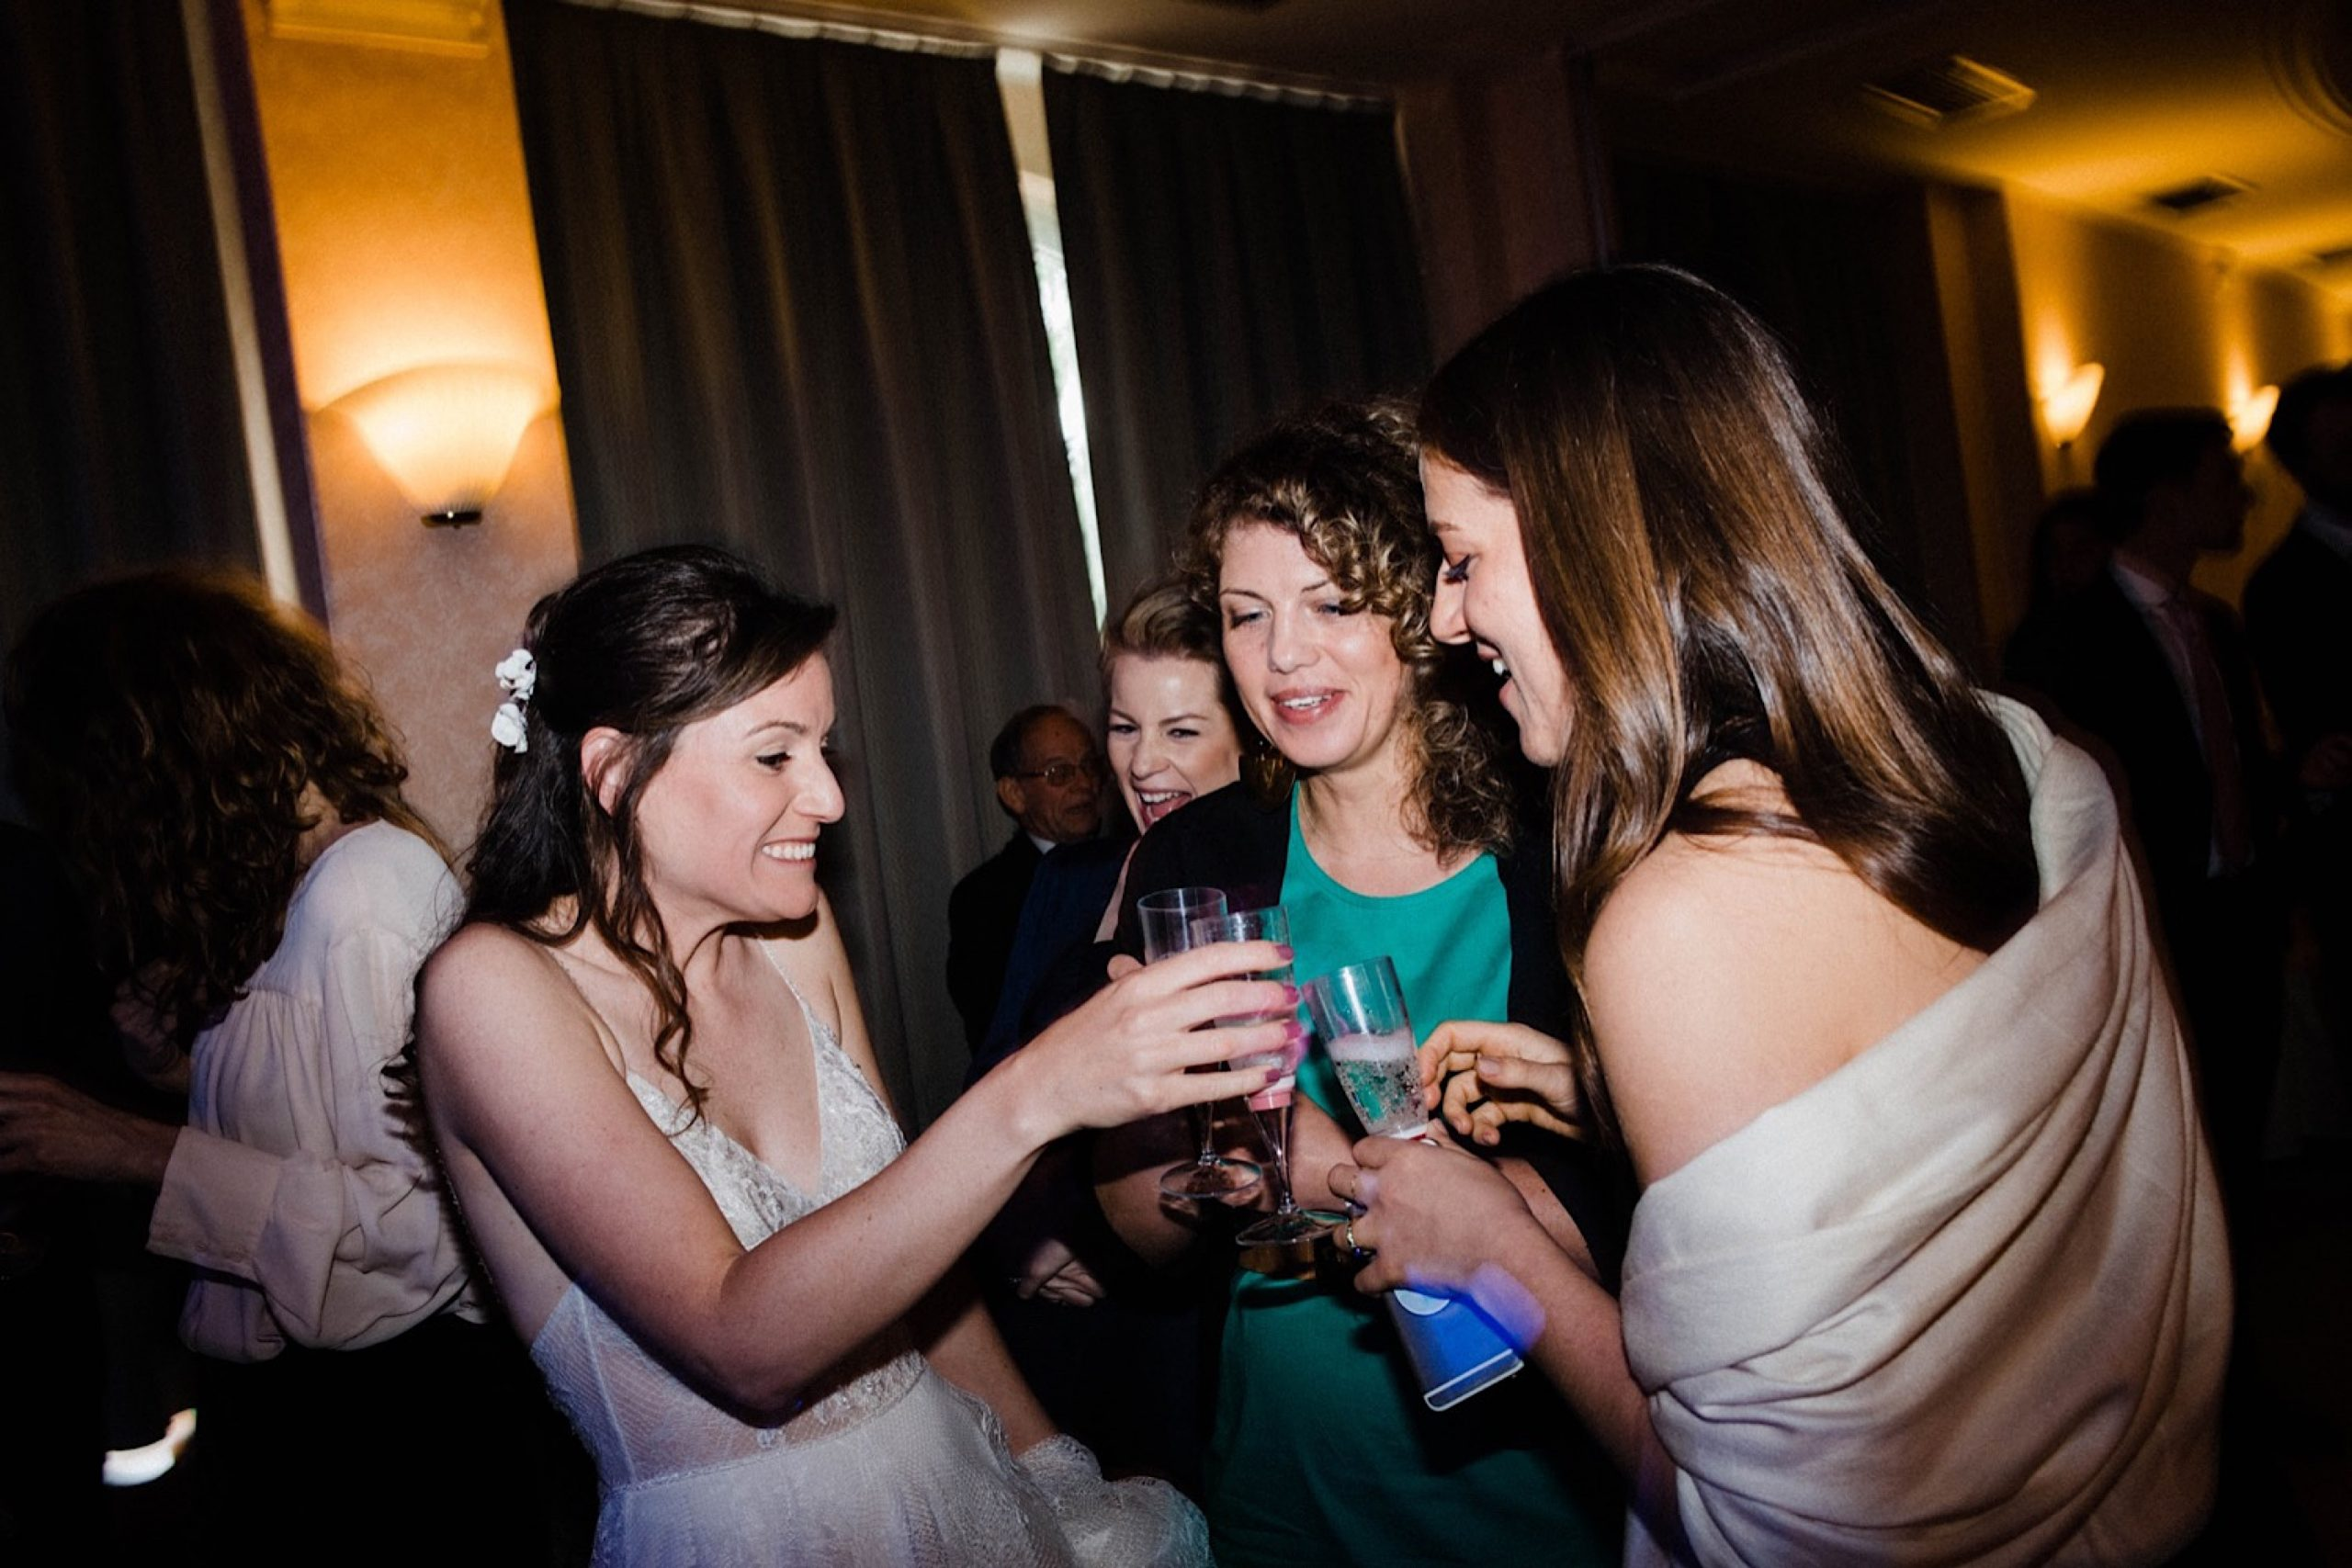 Dance Floor Wedding Photography of the Bride 'cheers-ing' her drink with some of her guests in Sestri Levante.